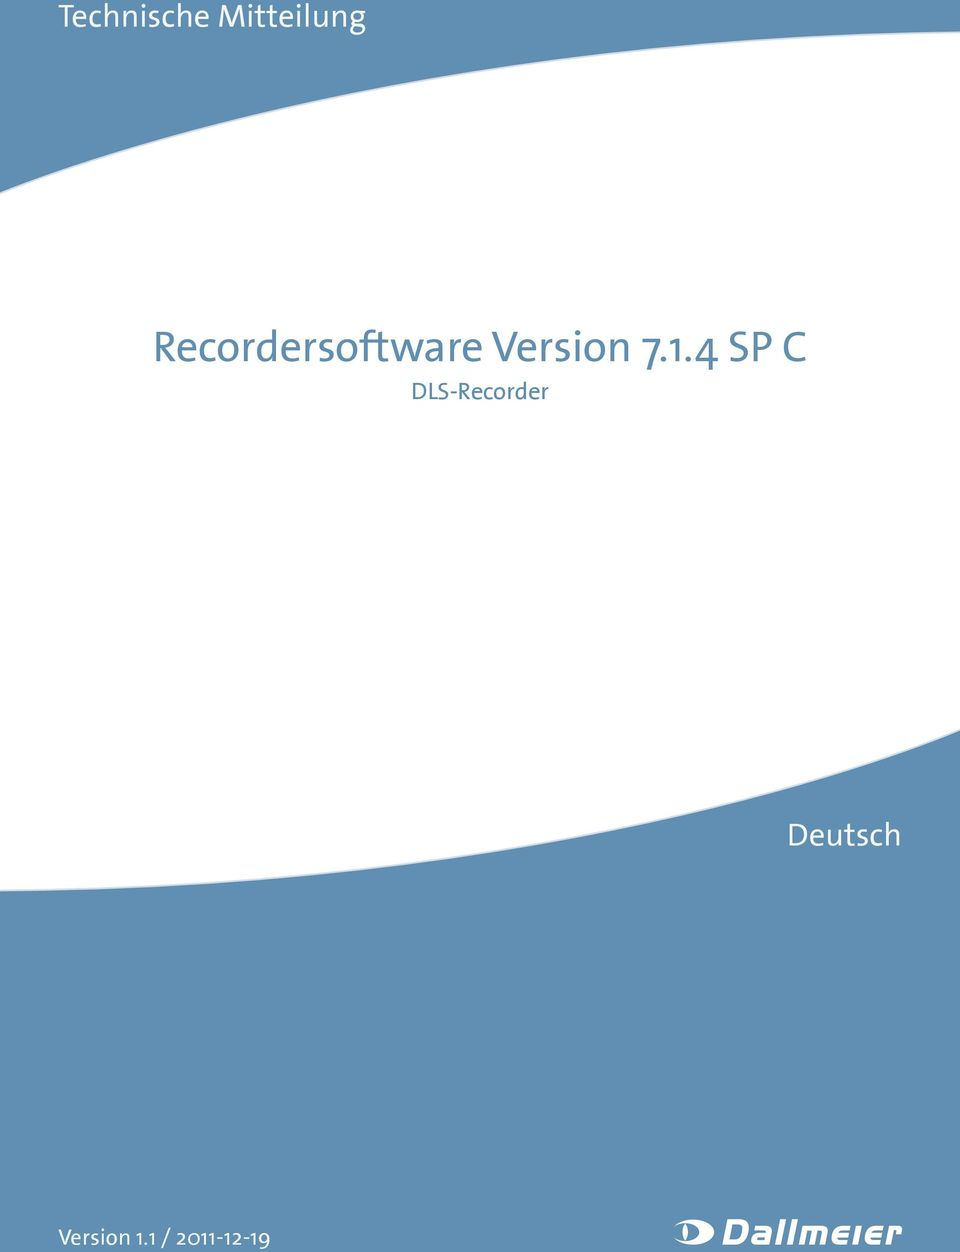 7.1.4 SP C DLS-Recorder